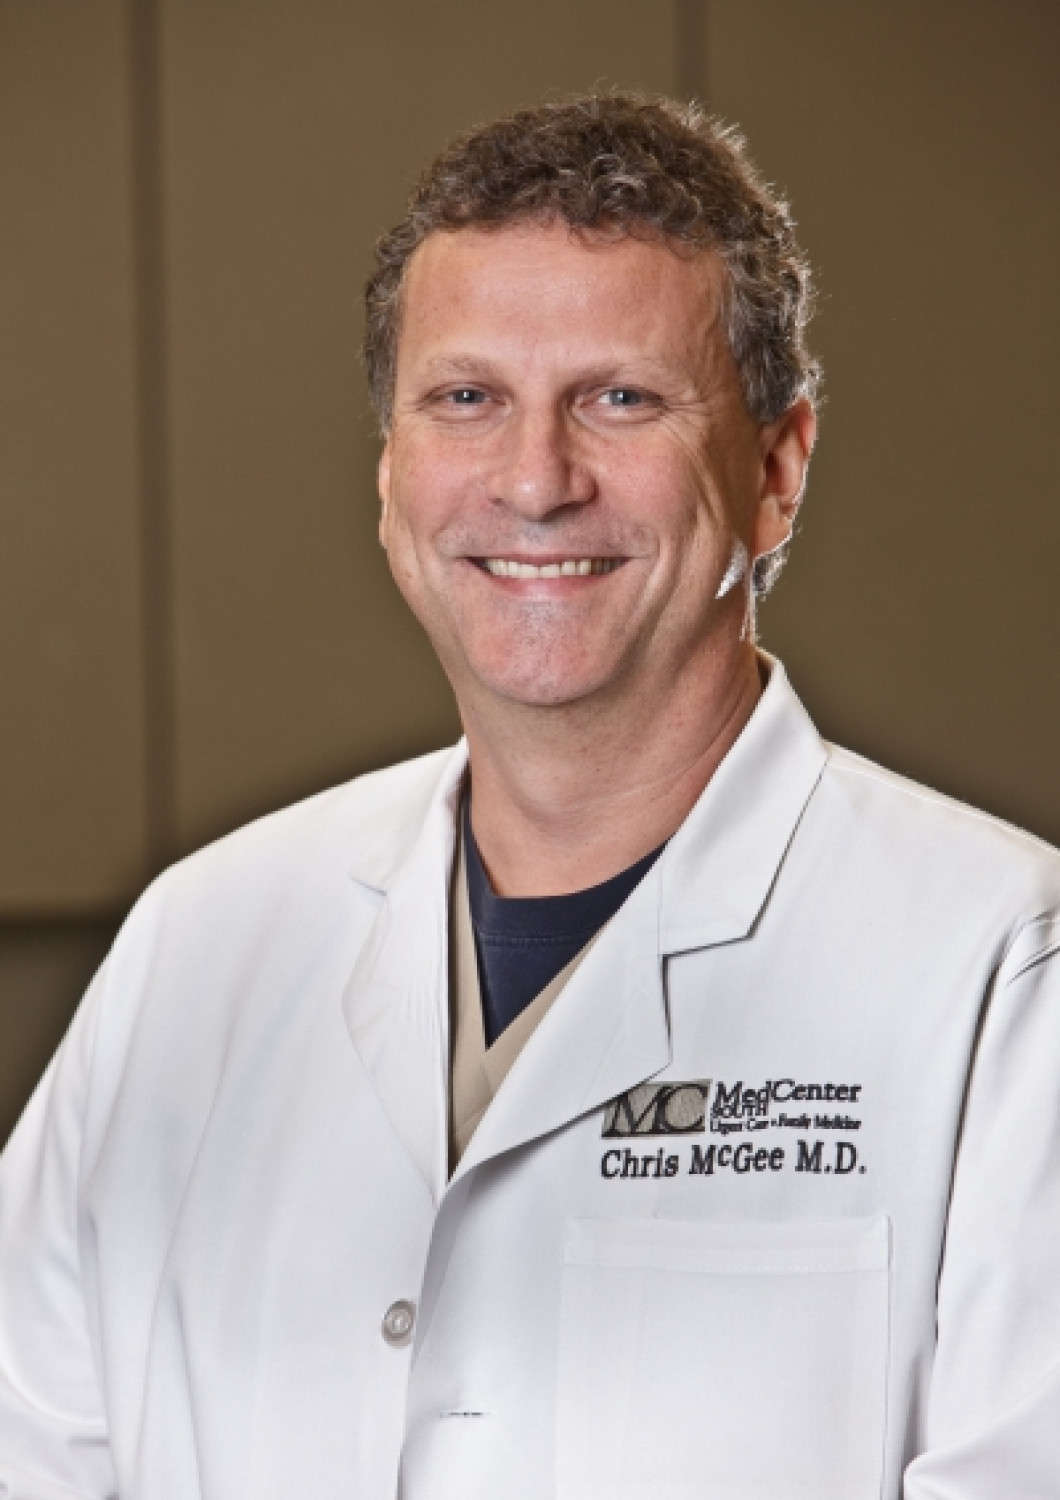 CHRISTOPHER MCGEE, M.D.